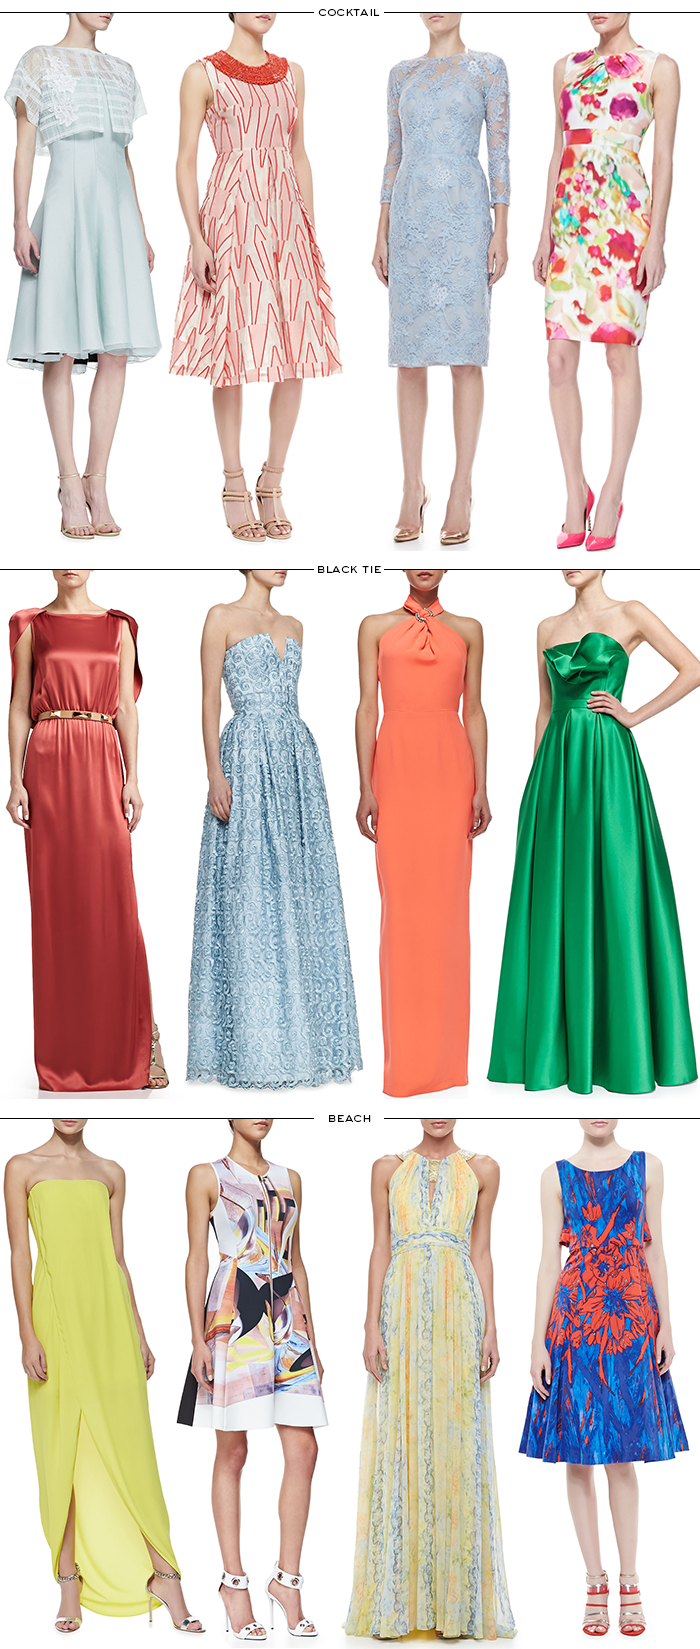 Spring / Summer Wedding Wardrobe | The Style Scribe